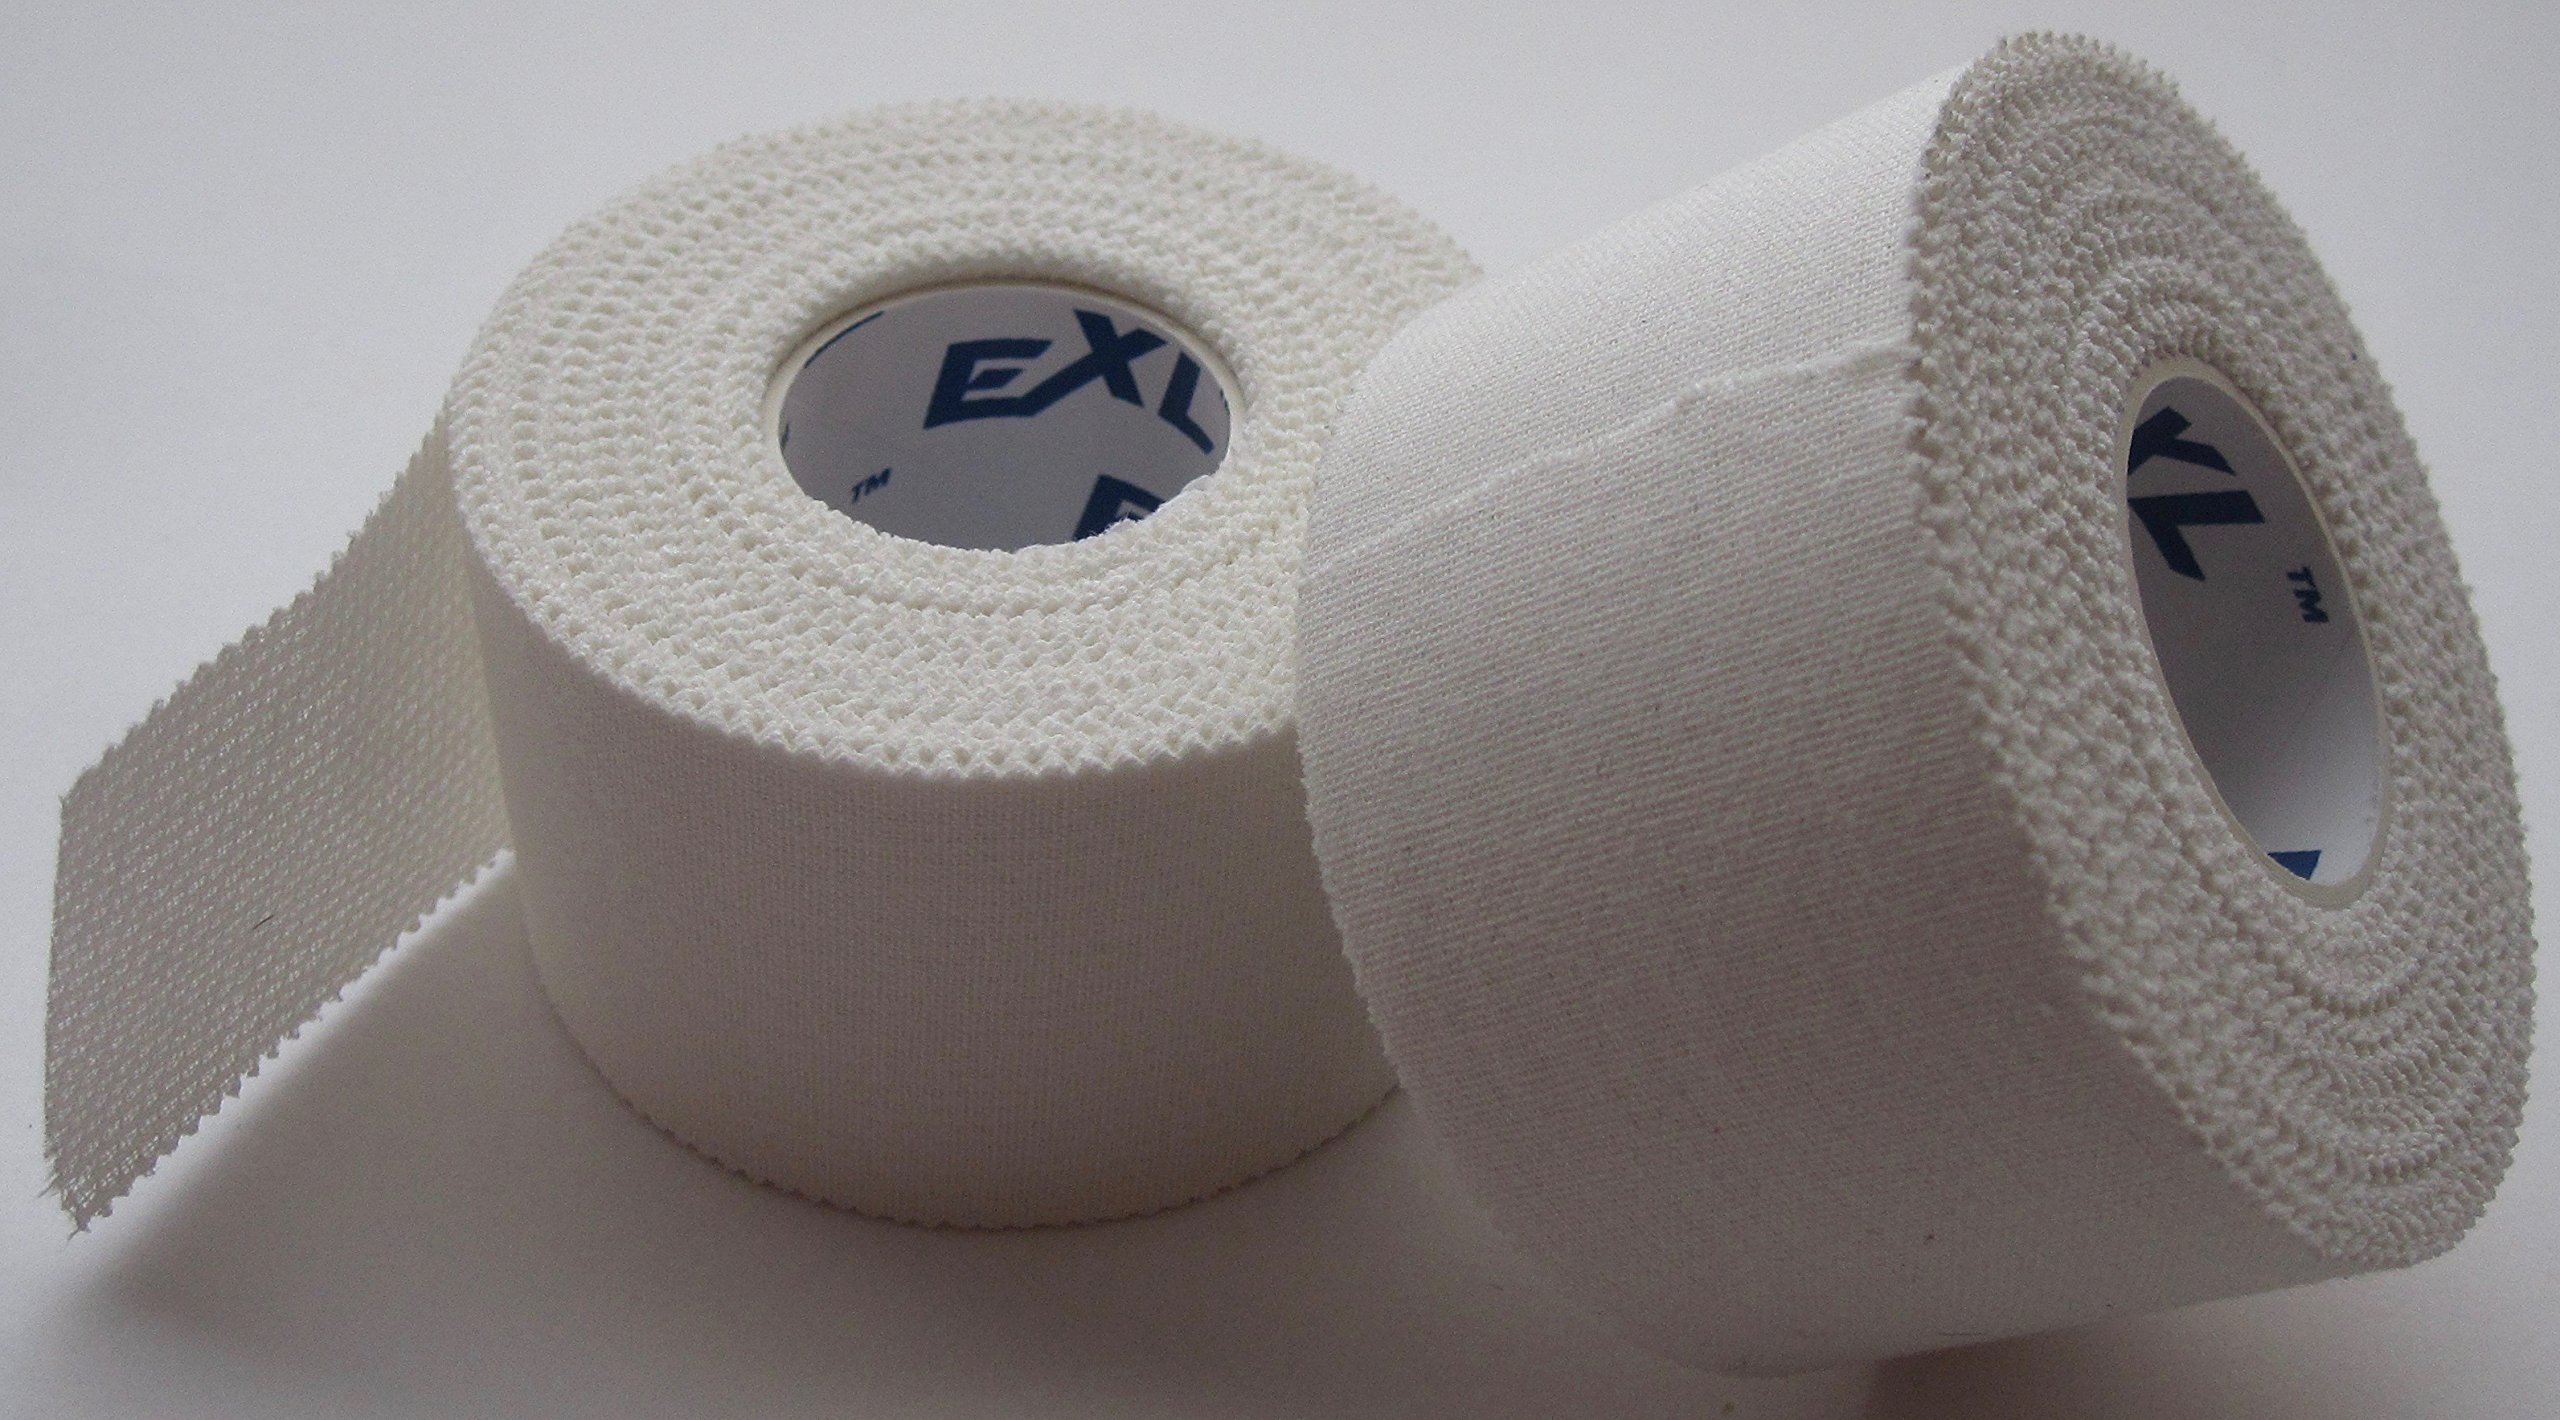 ExL Athletic Tape - Large Roll (1.5 inches by 10 Yards) Latex-Free (White) Case of 32 Rolls